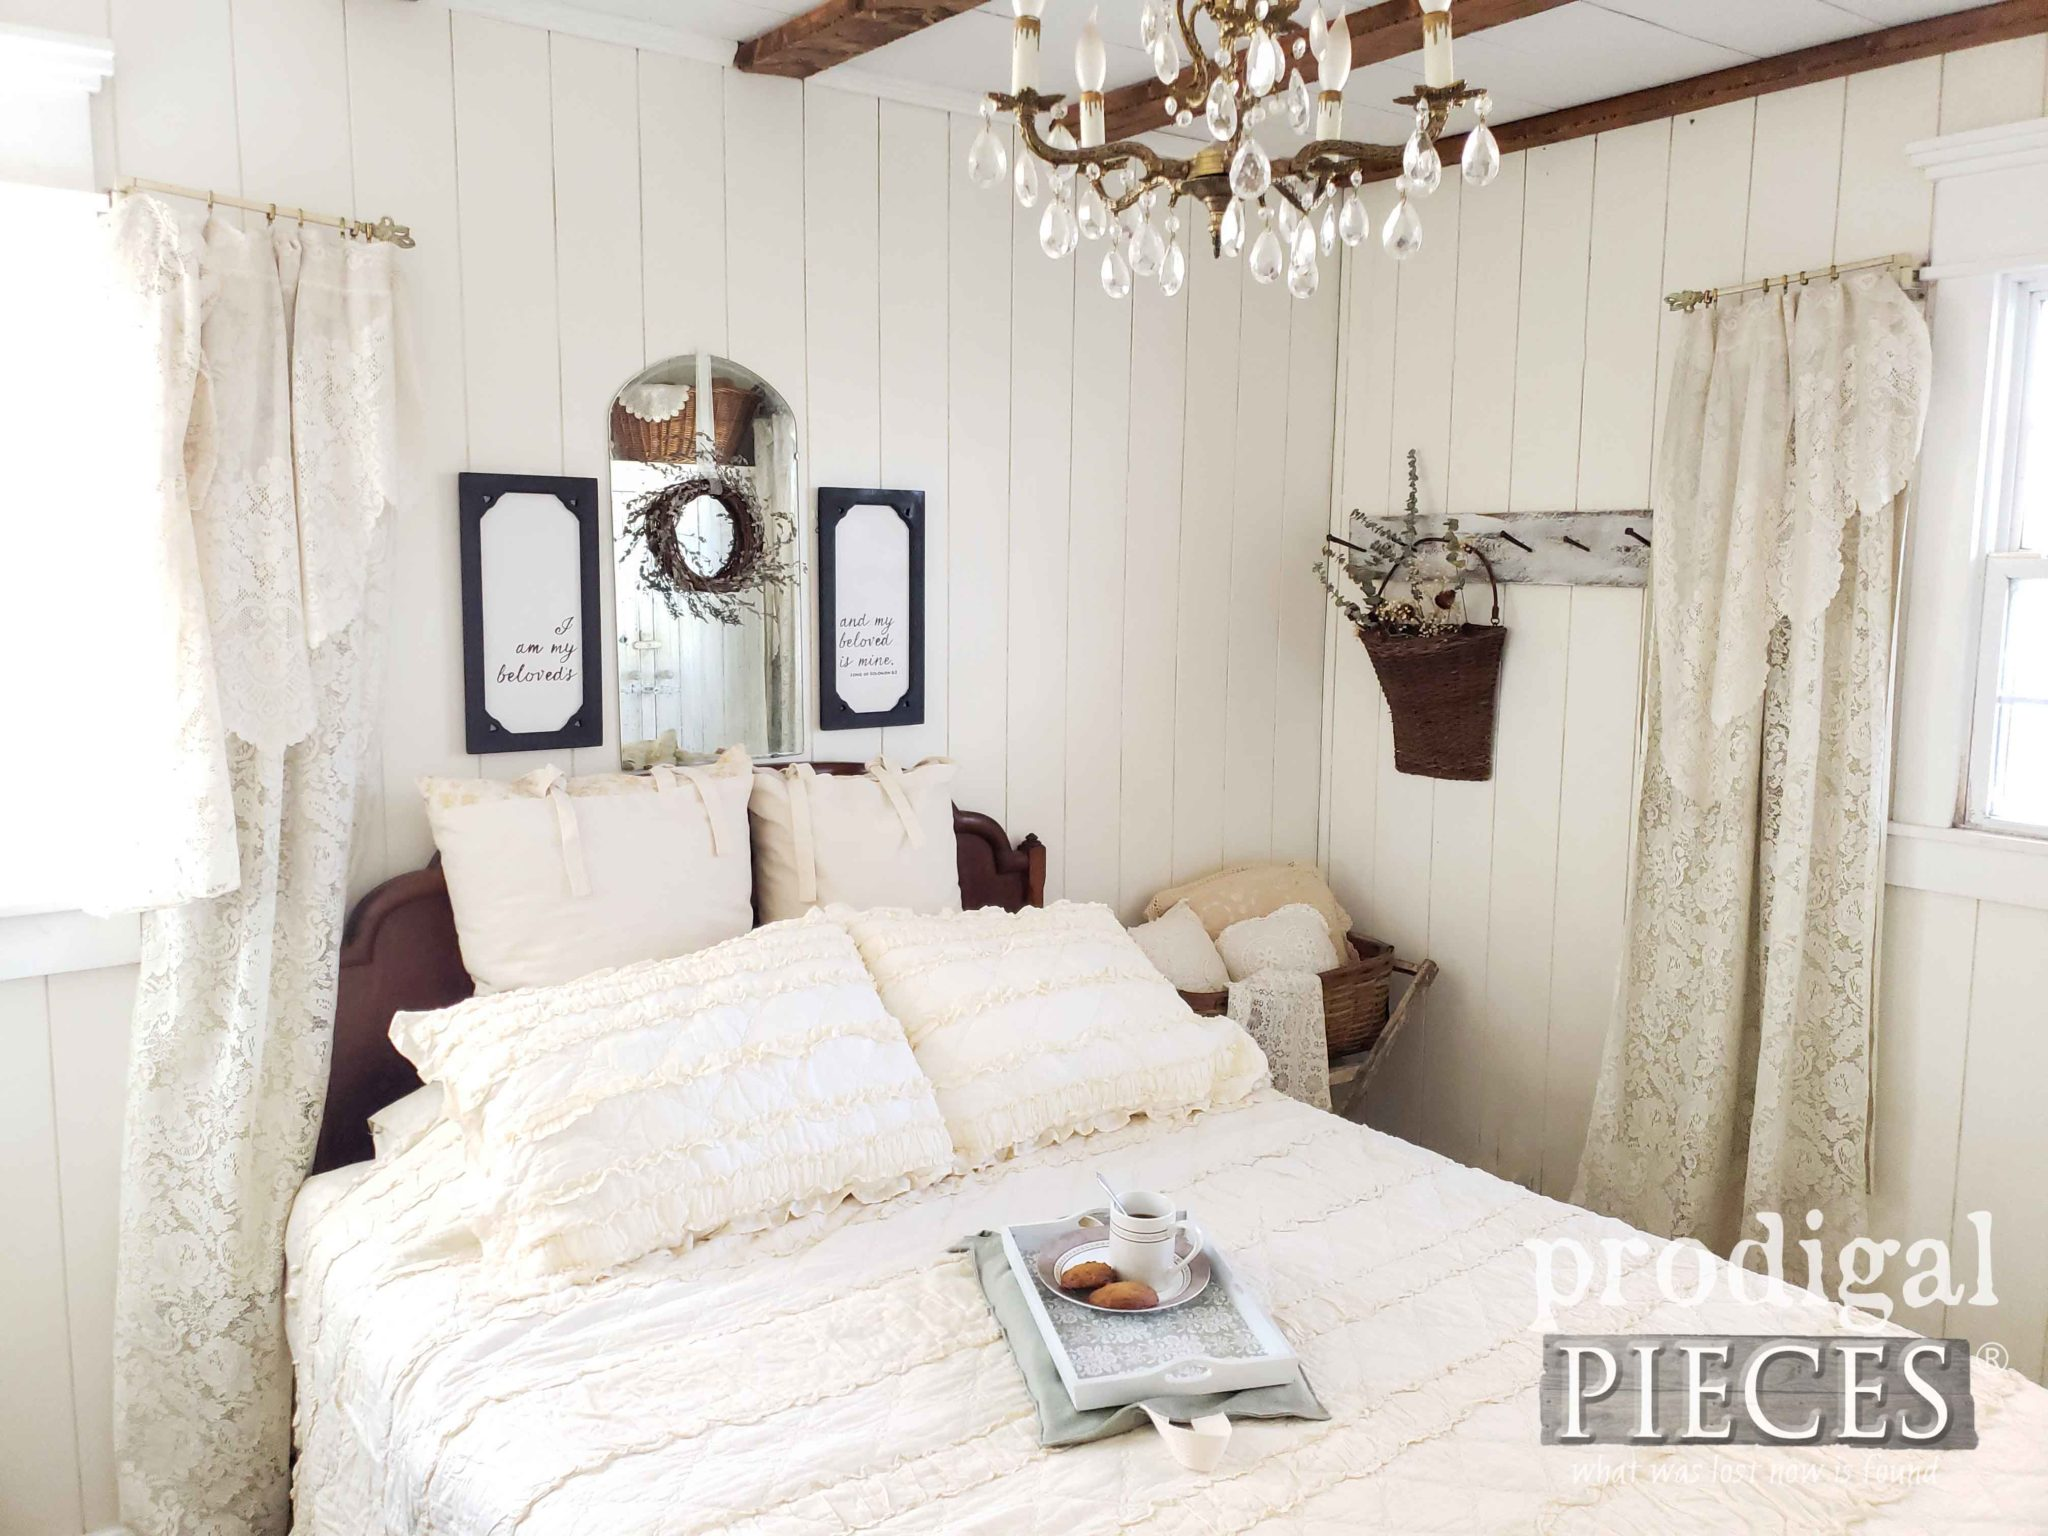 Farmhouse Style Bedroom with Upcycled Christmas Decor Fun by Larissa of Prodigal Pieces | prodigalpieces.com #prodigalpieces #farmhouse #bedroom #diy #handmade #home #homedecor #homedecorideas